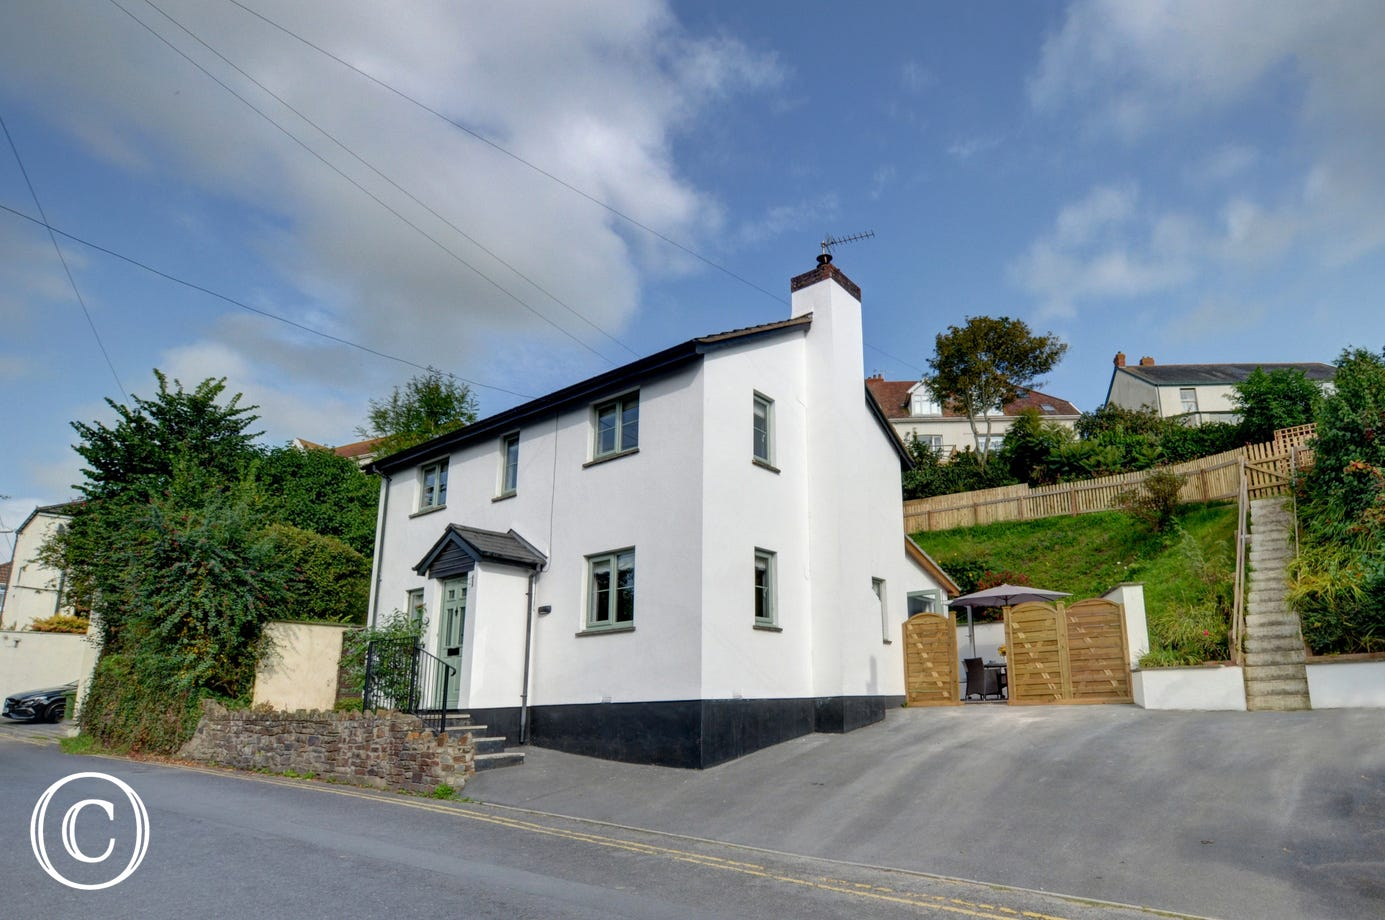 Situated just a short stroll from the village centre of Braunton this recently renovated property also has private parking for 3 cars